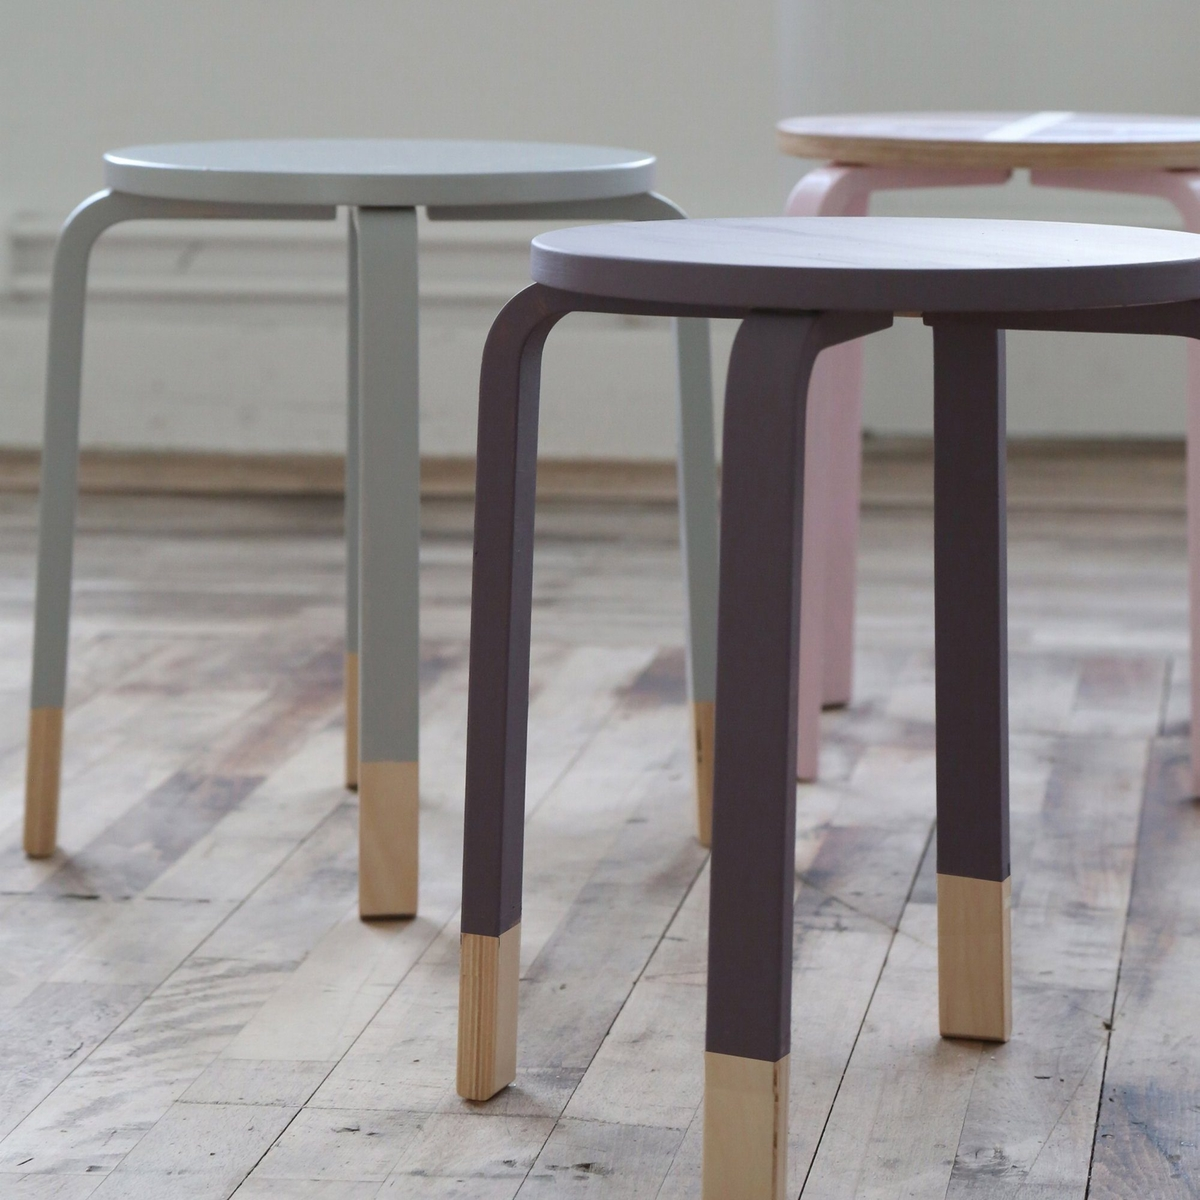 Give a stool a new look!